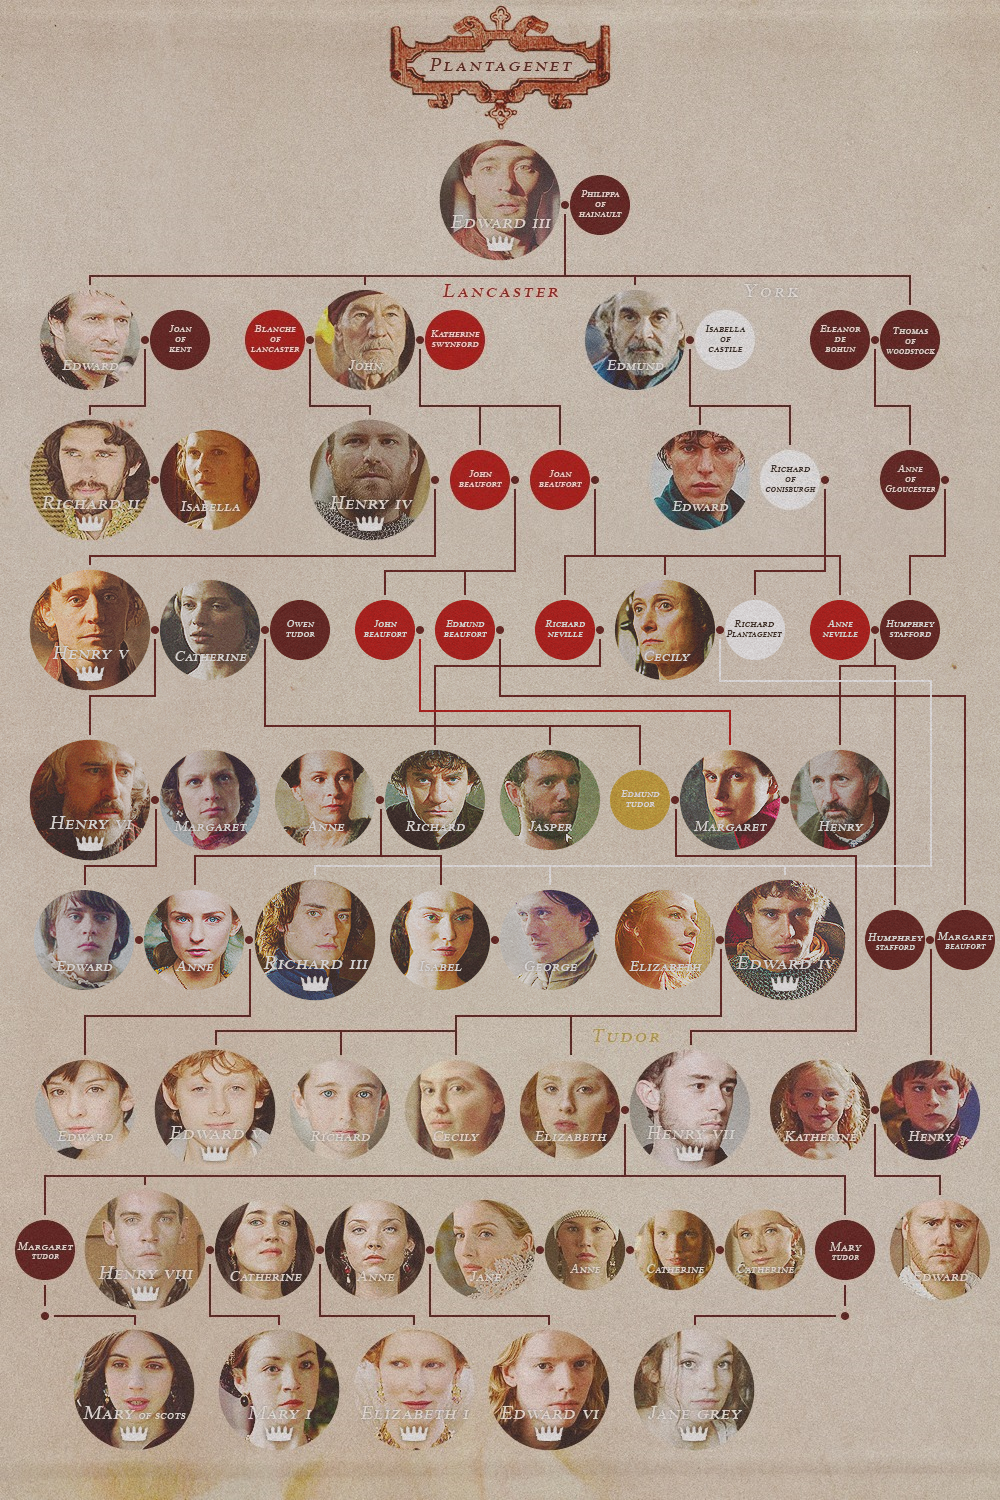 Plantagenet/Tudor Family Tree, from Edward III through Elizabeth I....great reference for connecting The White Queen and The Tudors story lines